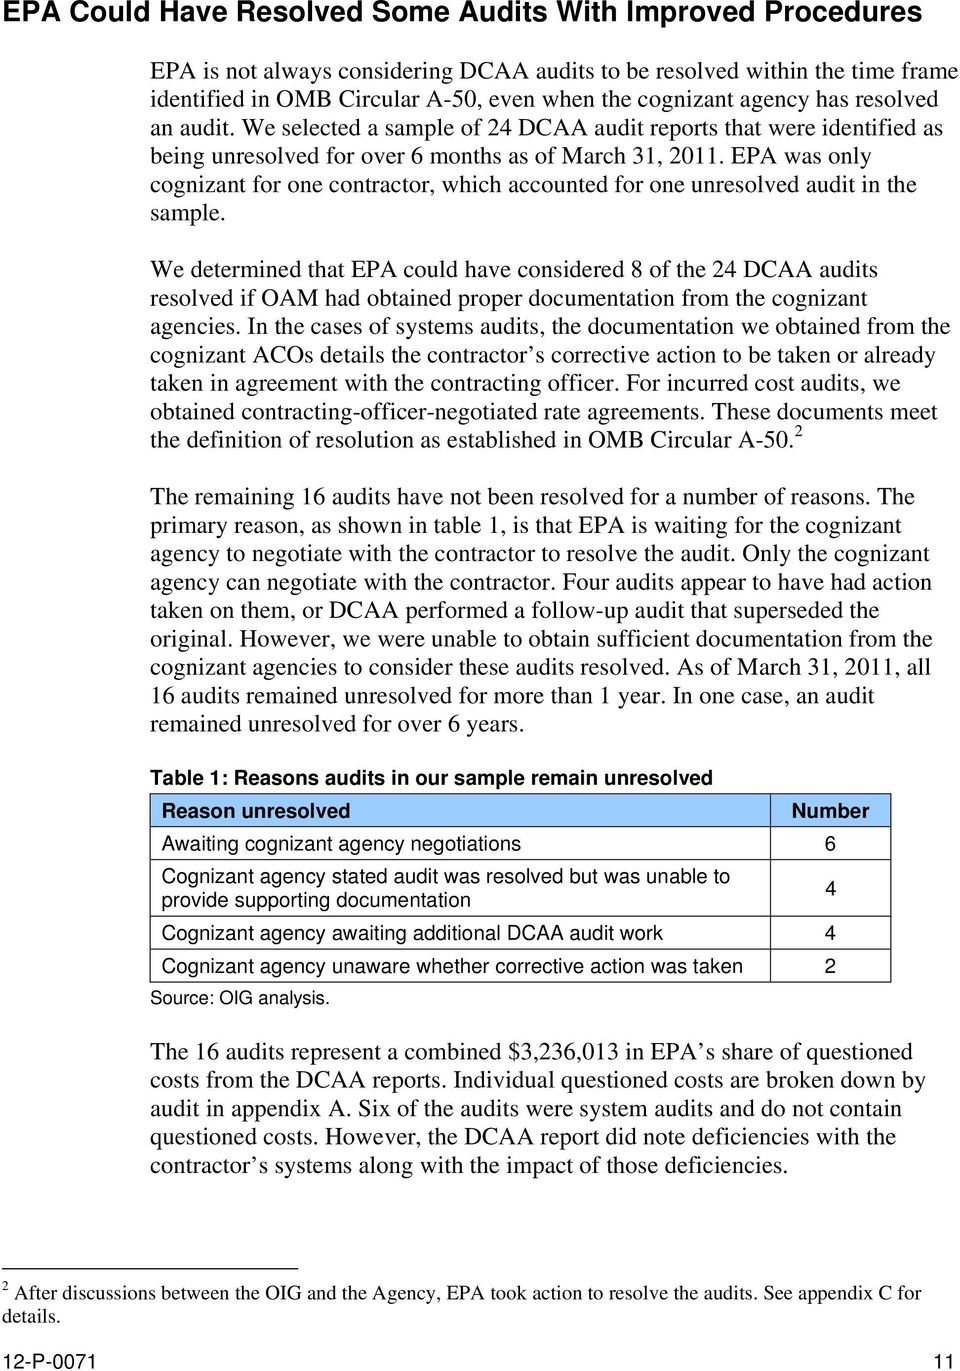 EPA was only cognizant for one contractor, which accounted for one unresolved audit in the sample.